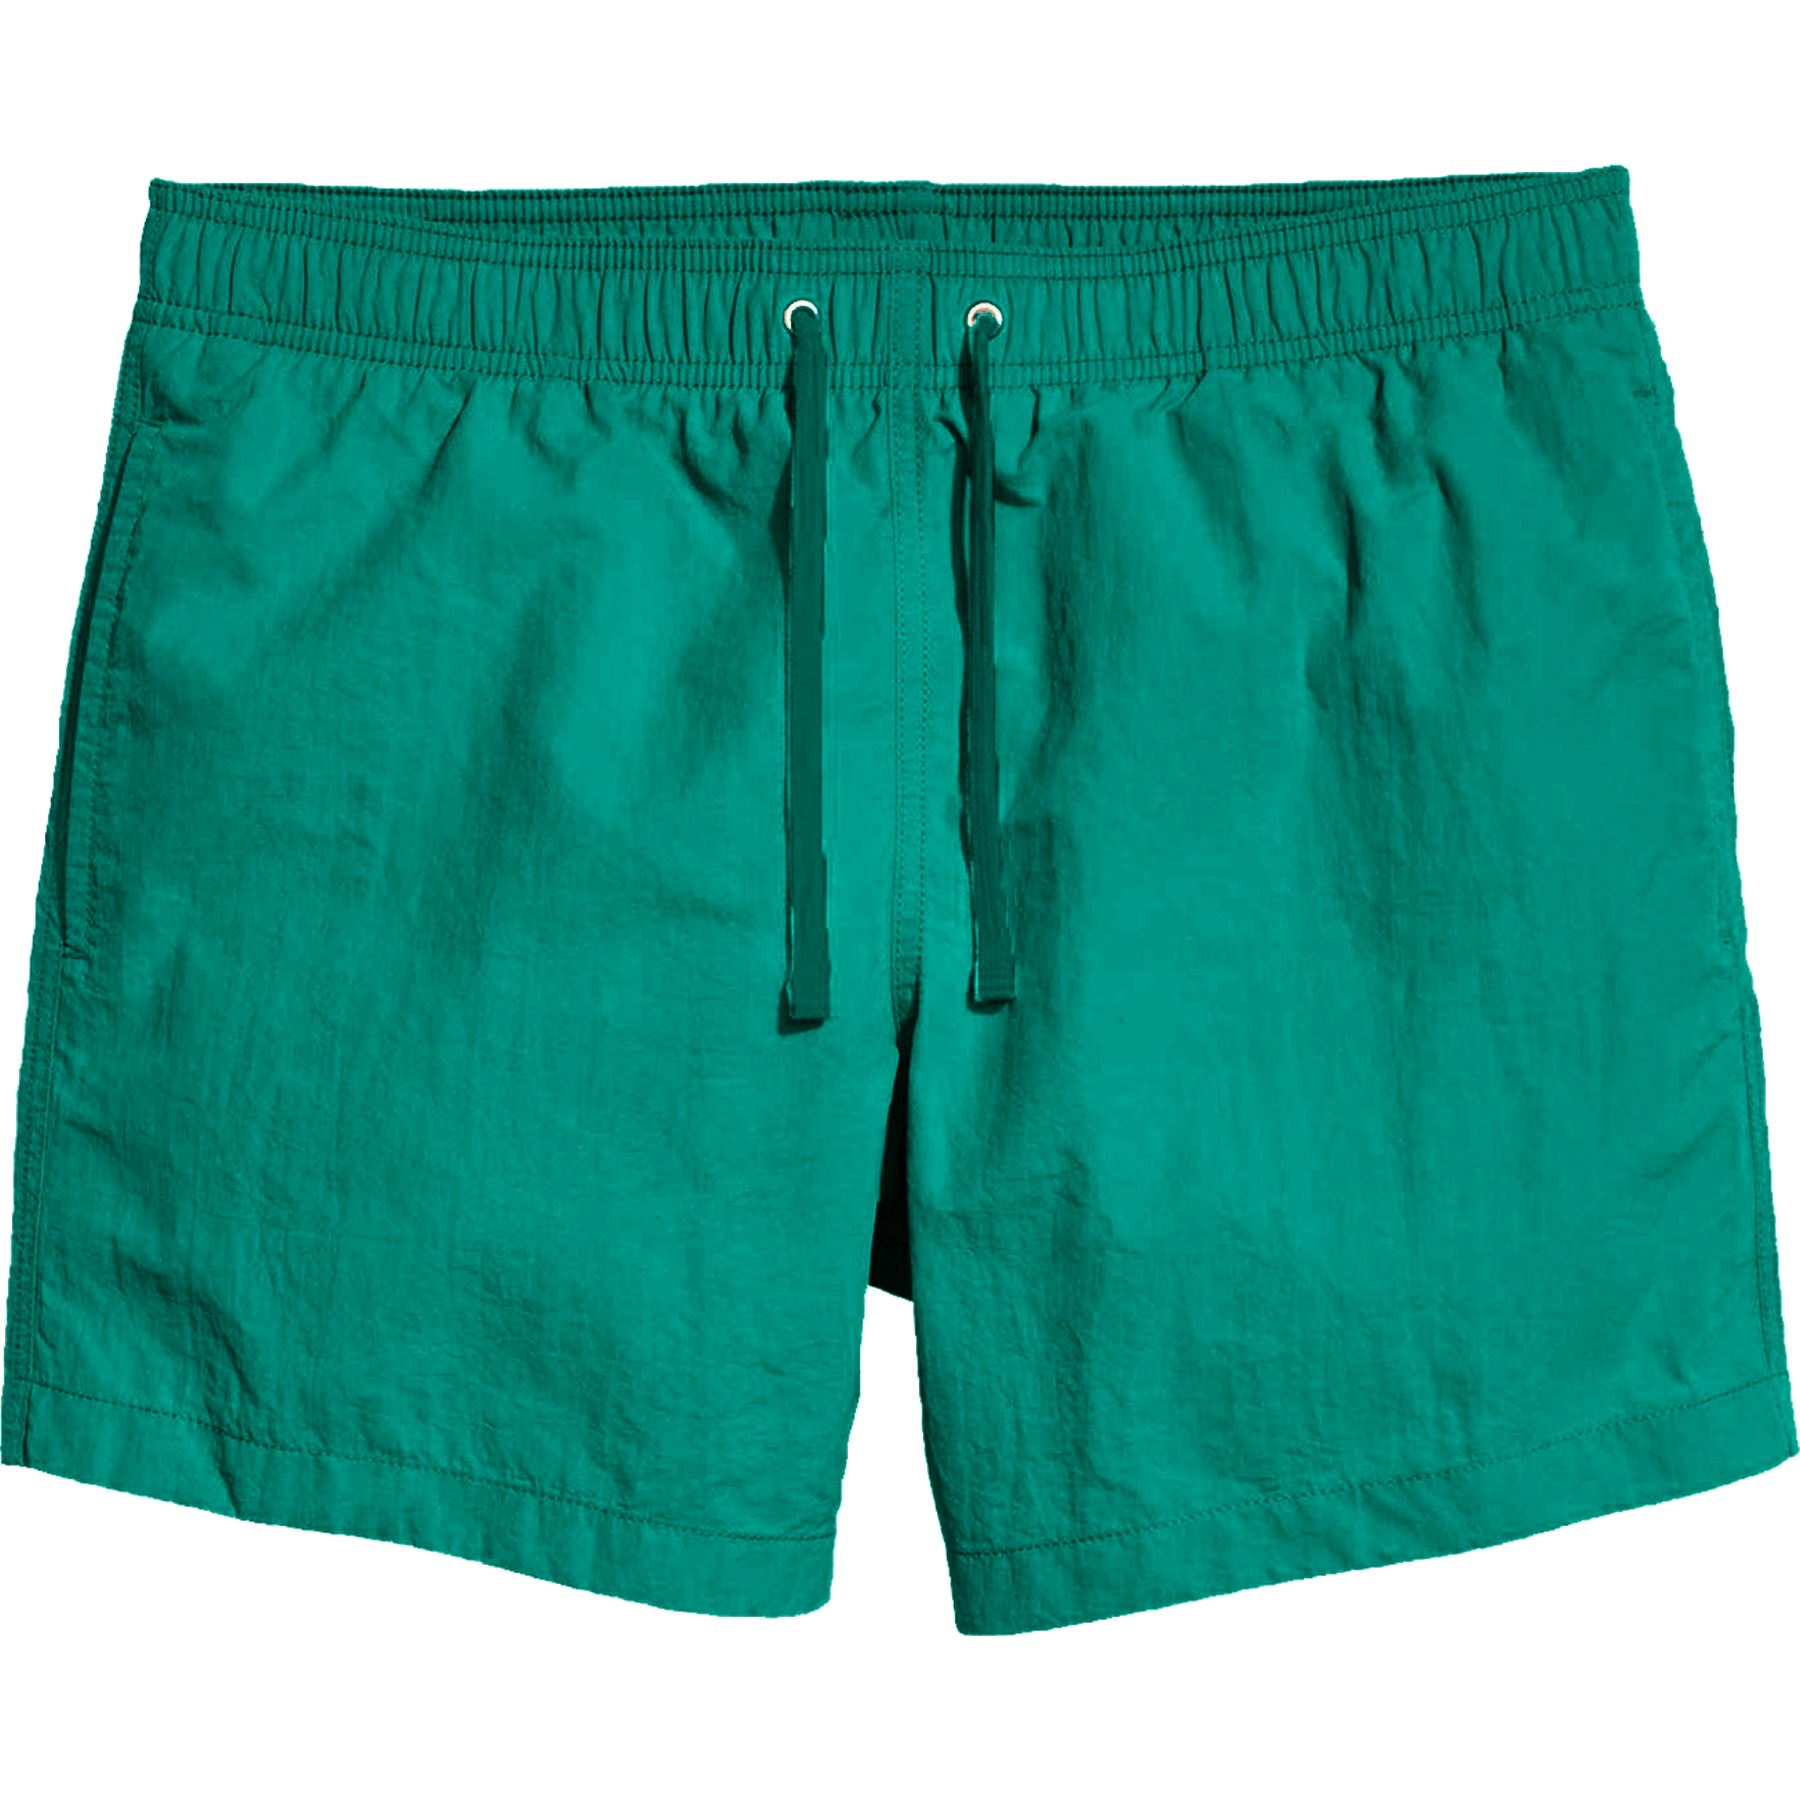 c8937aca4a Mens H M Summer Swim Shorts Mesh Lined Swimming Quick Dry Trunks XS ...